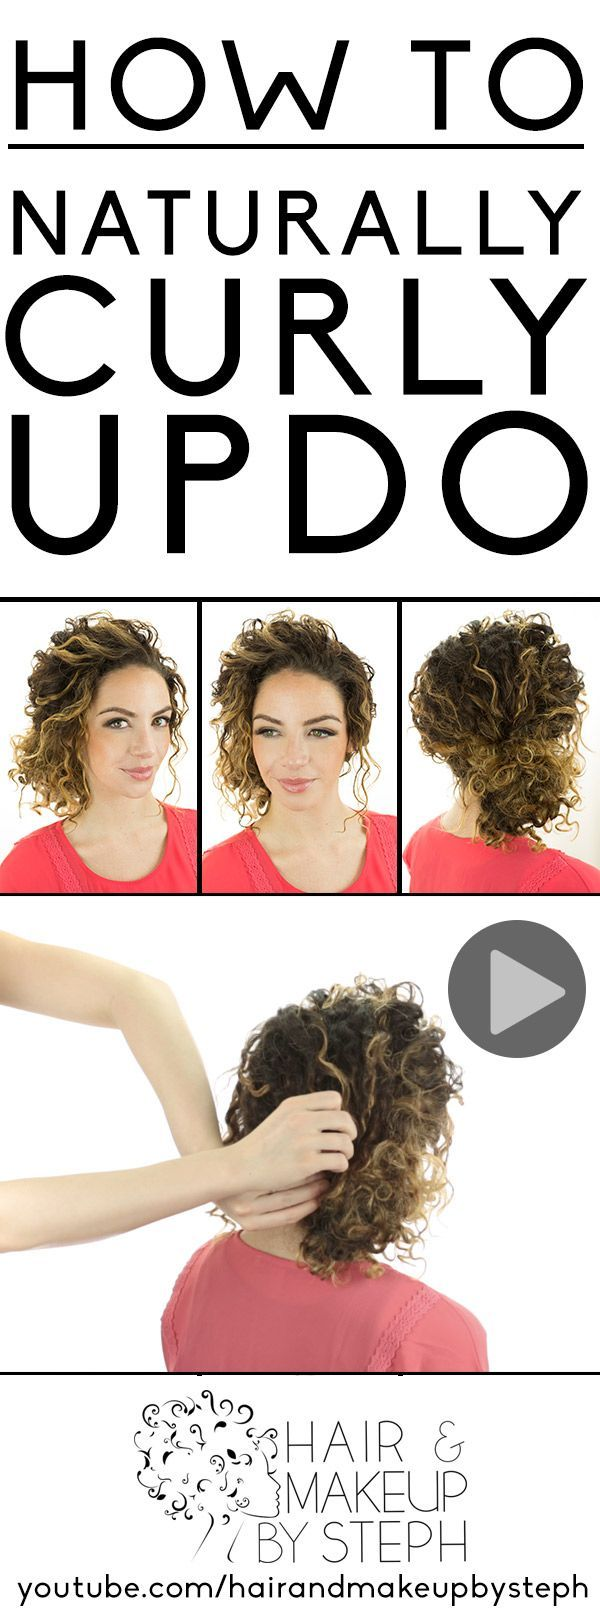 Styling tips and video tutorial for a naturally curly updo. #naturalcurls